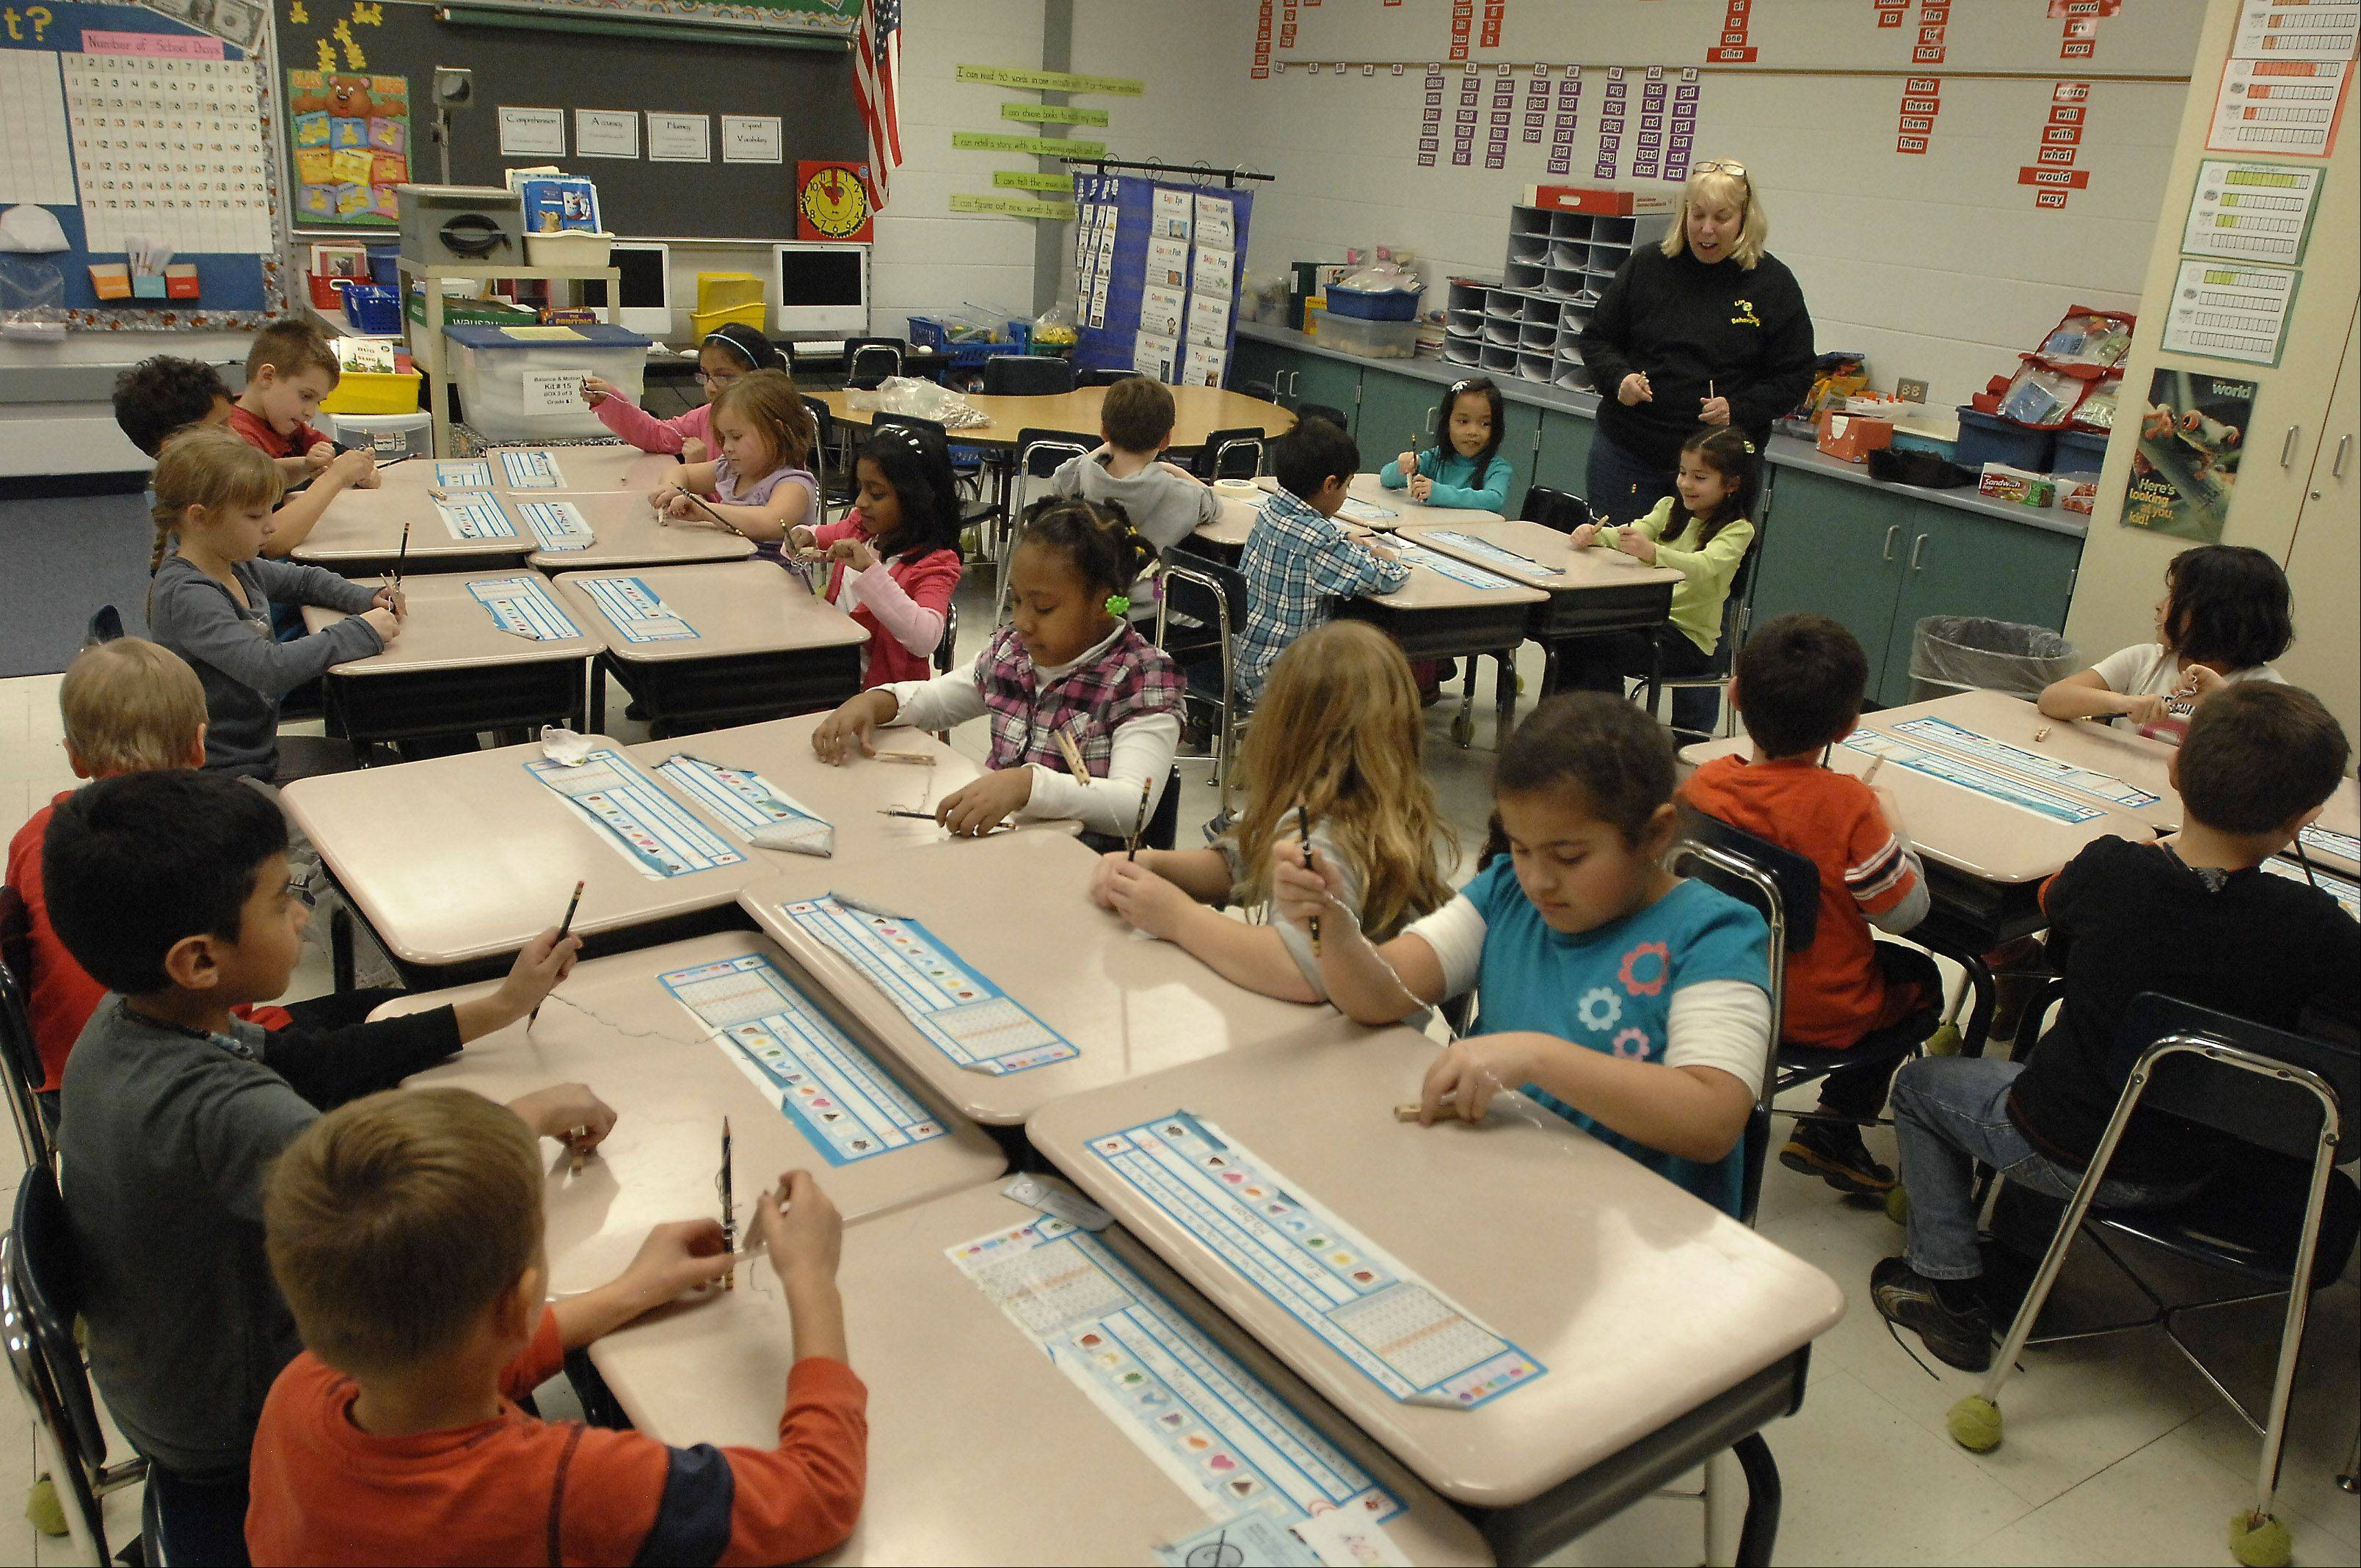 Pam Schakowsky teaches a science experiment to her first grade class at Robert Frost Elementary School in Mount Prospect. District 59 will build four additional classrooms at the school to address overcrowding.